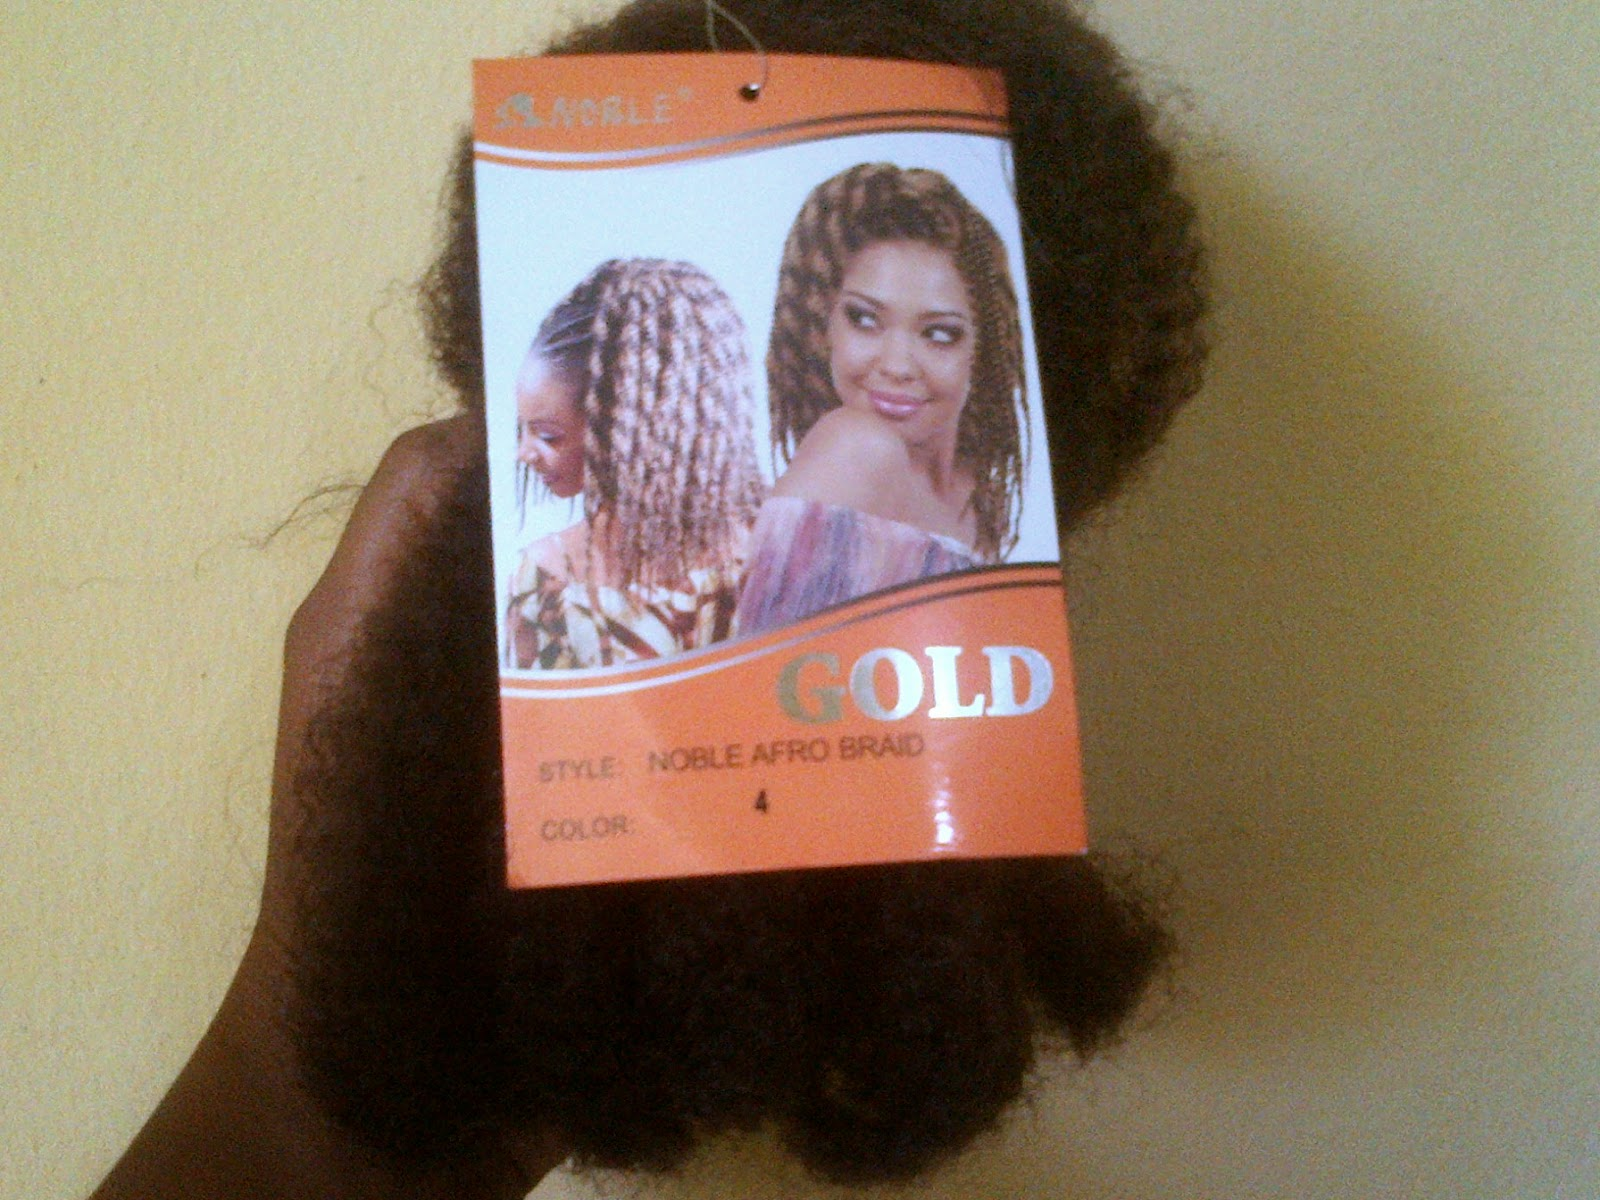 Crochet Hair How Many Packs : How Many Packs Of Hair Do You Need For Crochet Braids - Braids